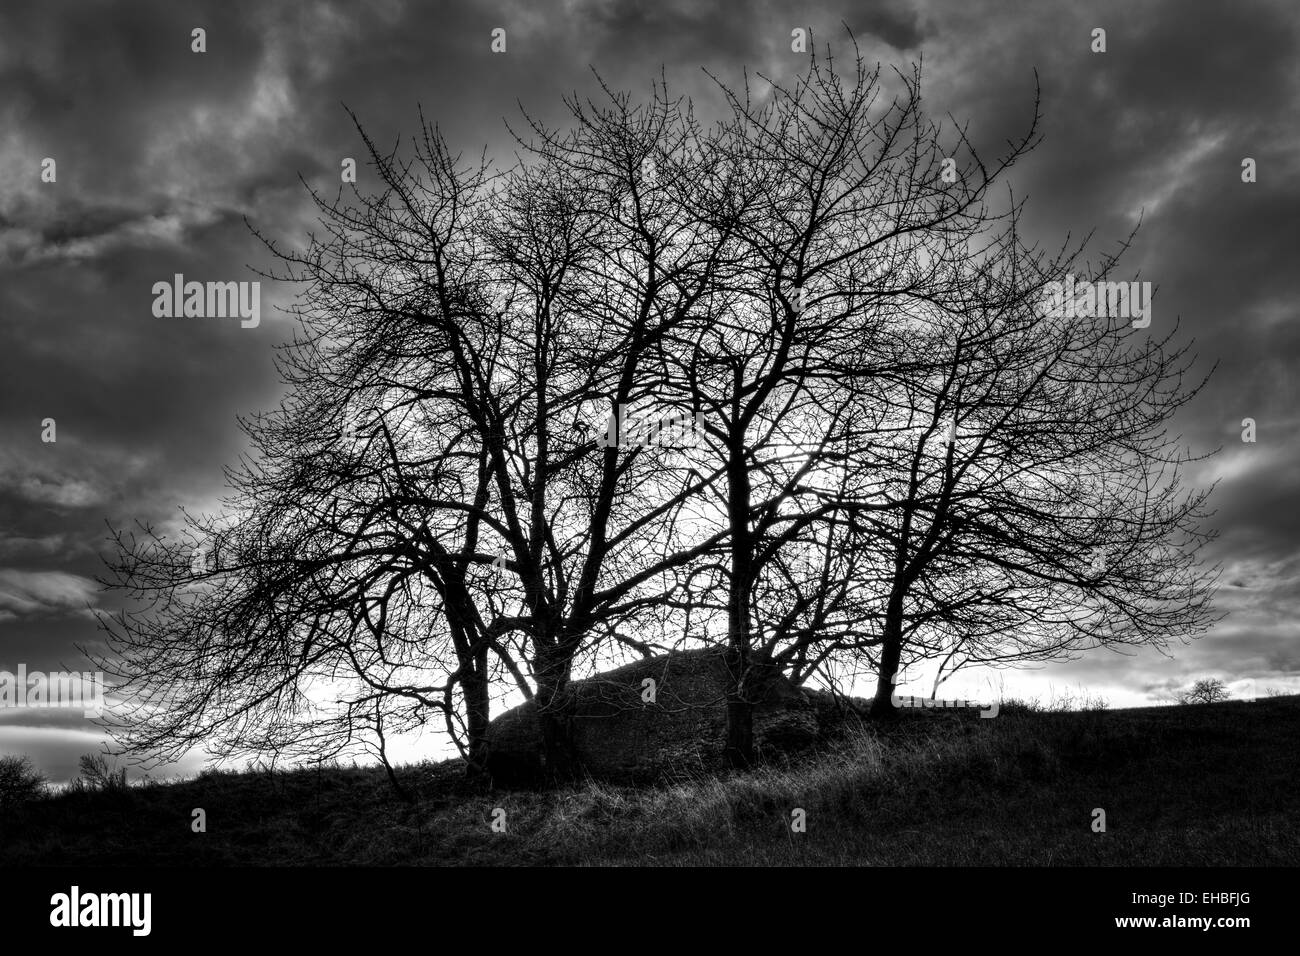 Mystical monolith hidden under trees before storm B&W photography - Stock Image